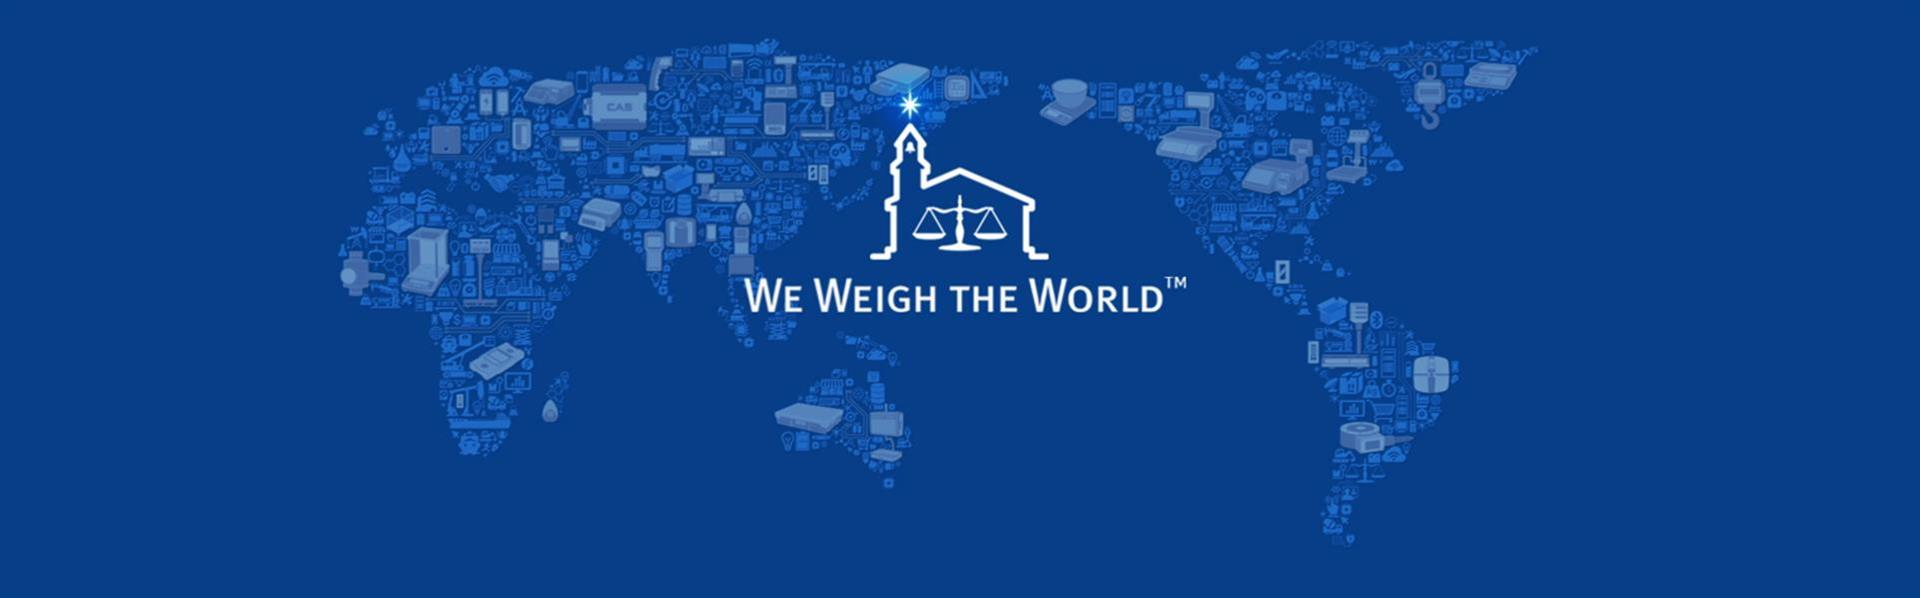 WE WEIGH THE WORLD